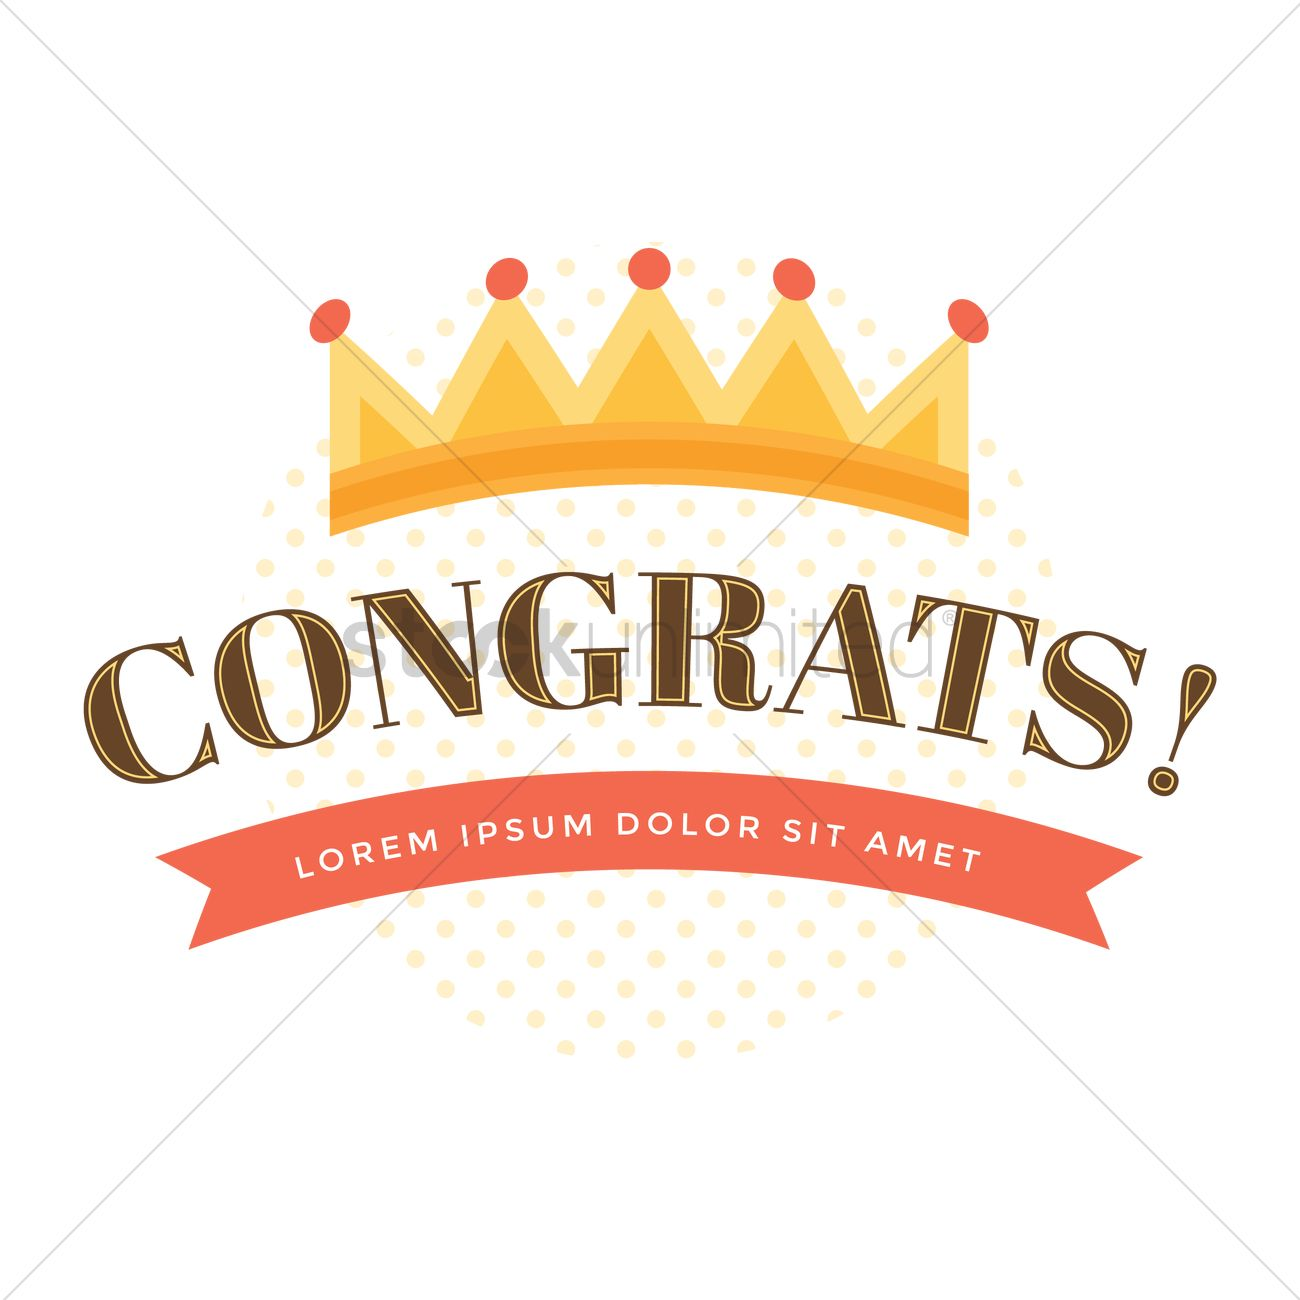 congratulations design vector image 1924069 stockunlimited